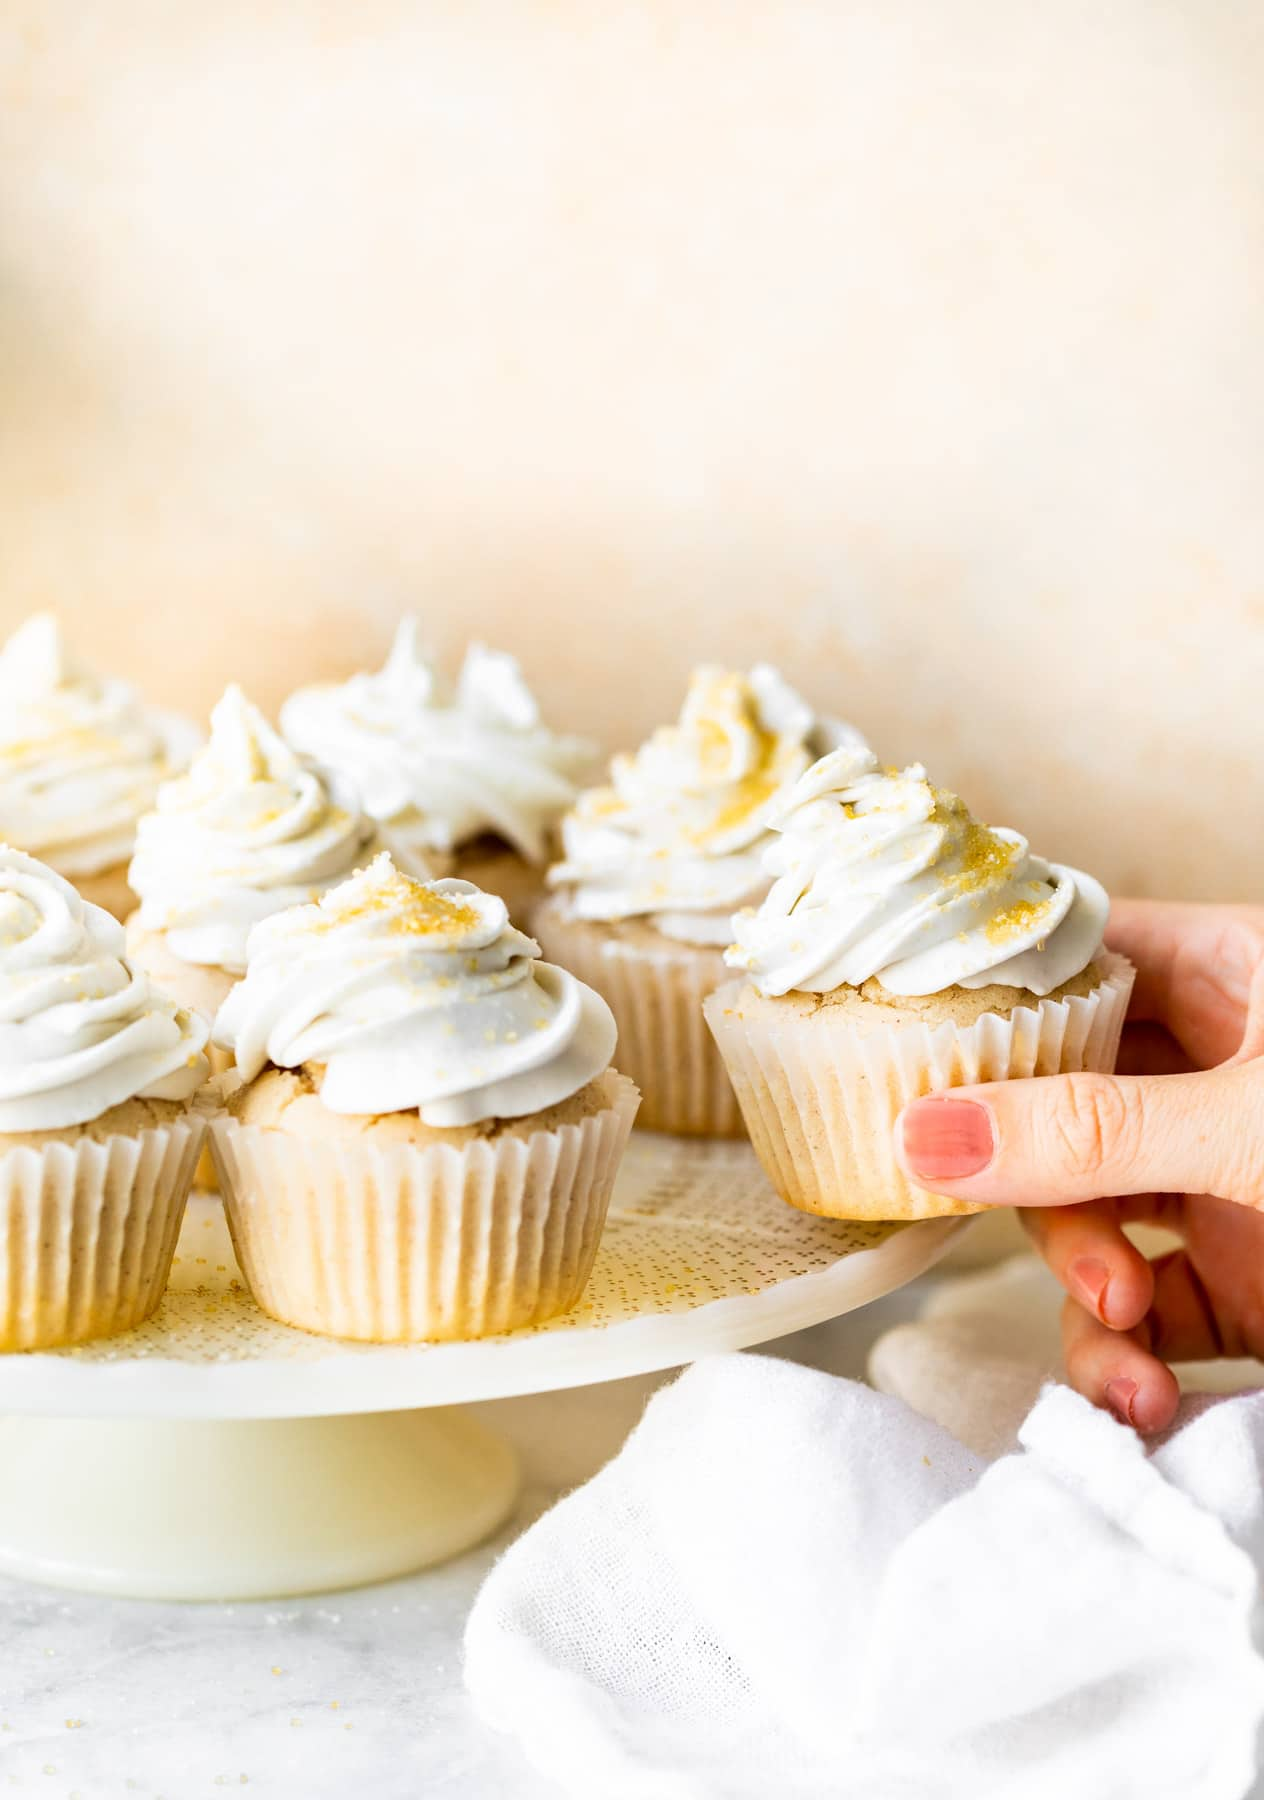 woman's hand removing frosted cupcake from group of them on cake stand